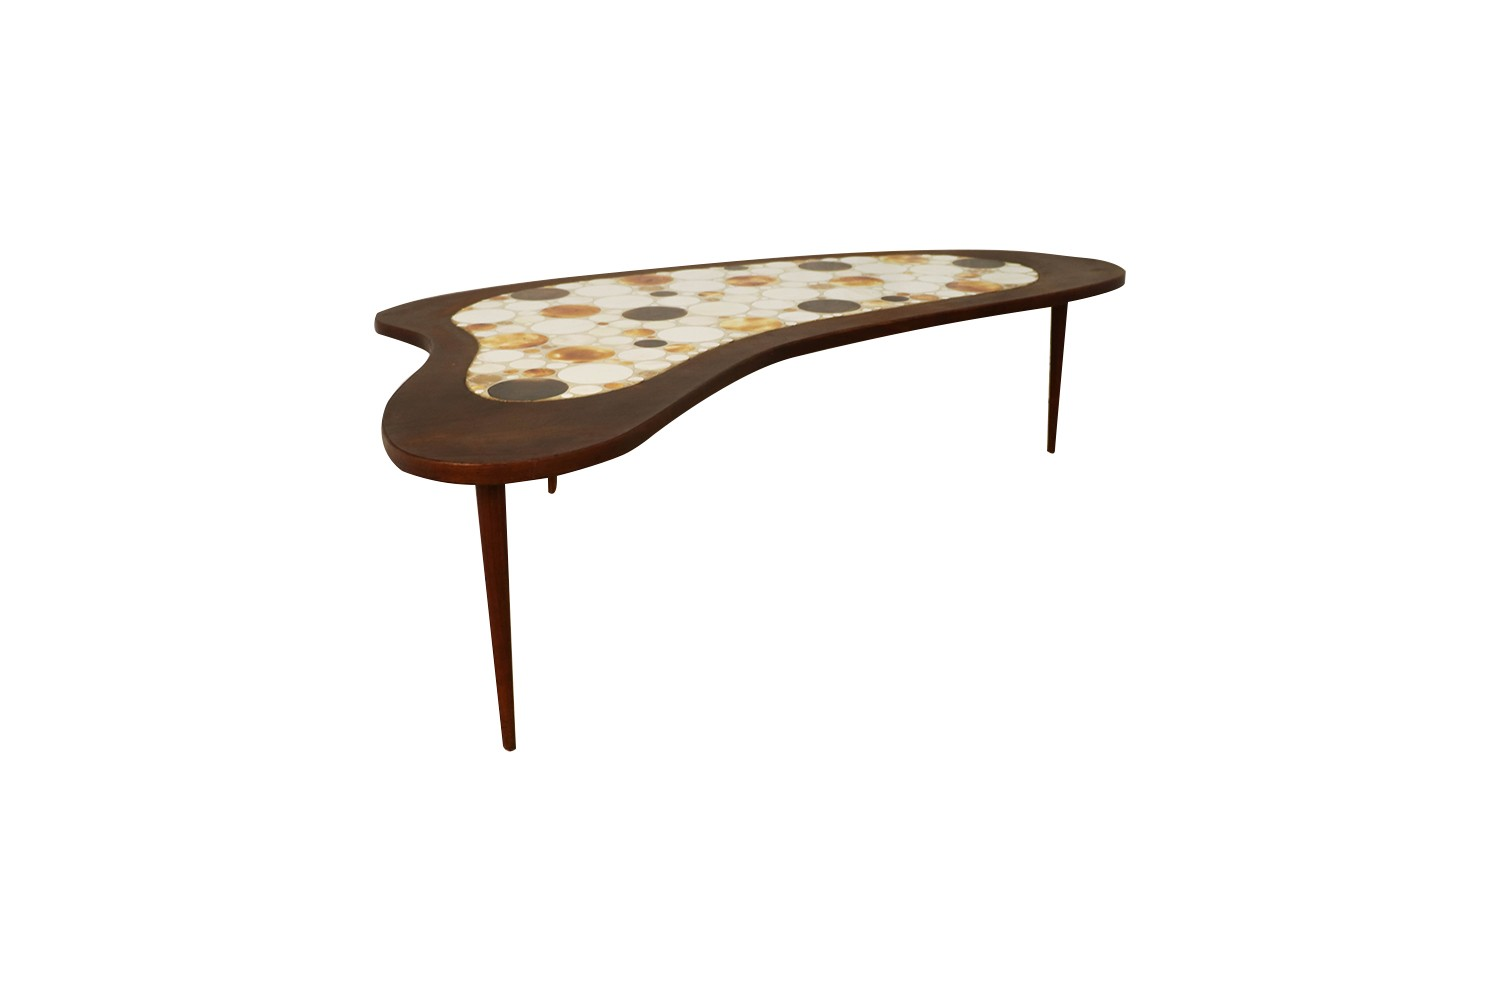 Swell Mid Century Mosaic Tile Top Kidney Shaped Coffee Table Ocoug Best Dining Table And Chair Ideas Images Ocougorg